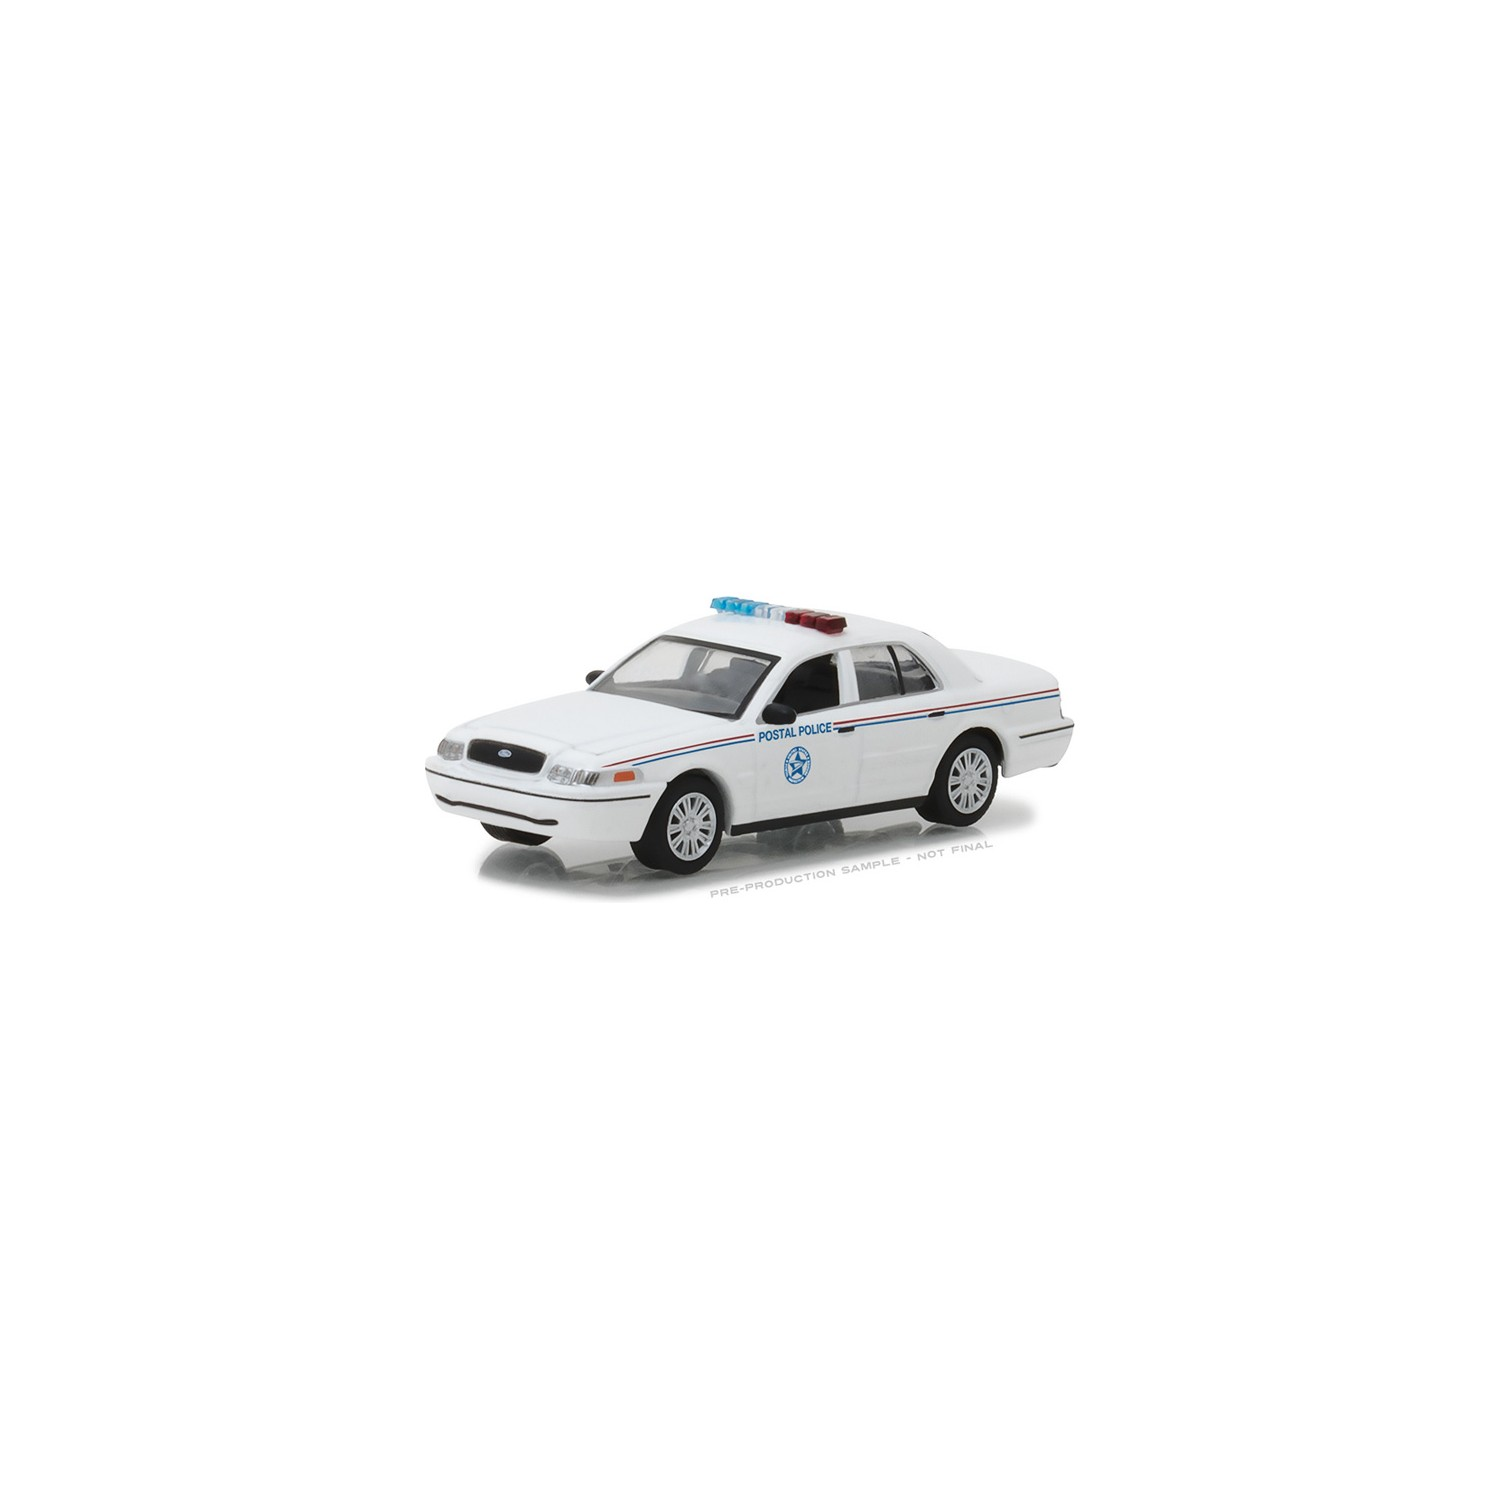 Greenlight Collectibles Hot Pursuit Police Cars Series Troys Toys 1949 Ford Crown Victoria Hobby Exclusive 2010 Interceptor United States Postal Service